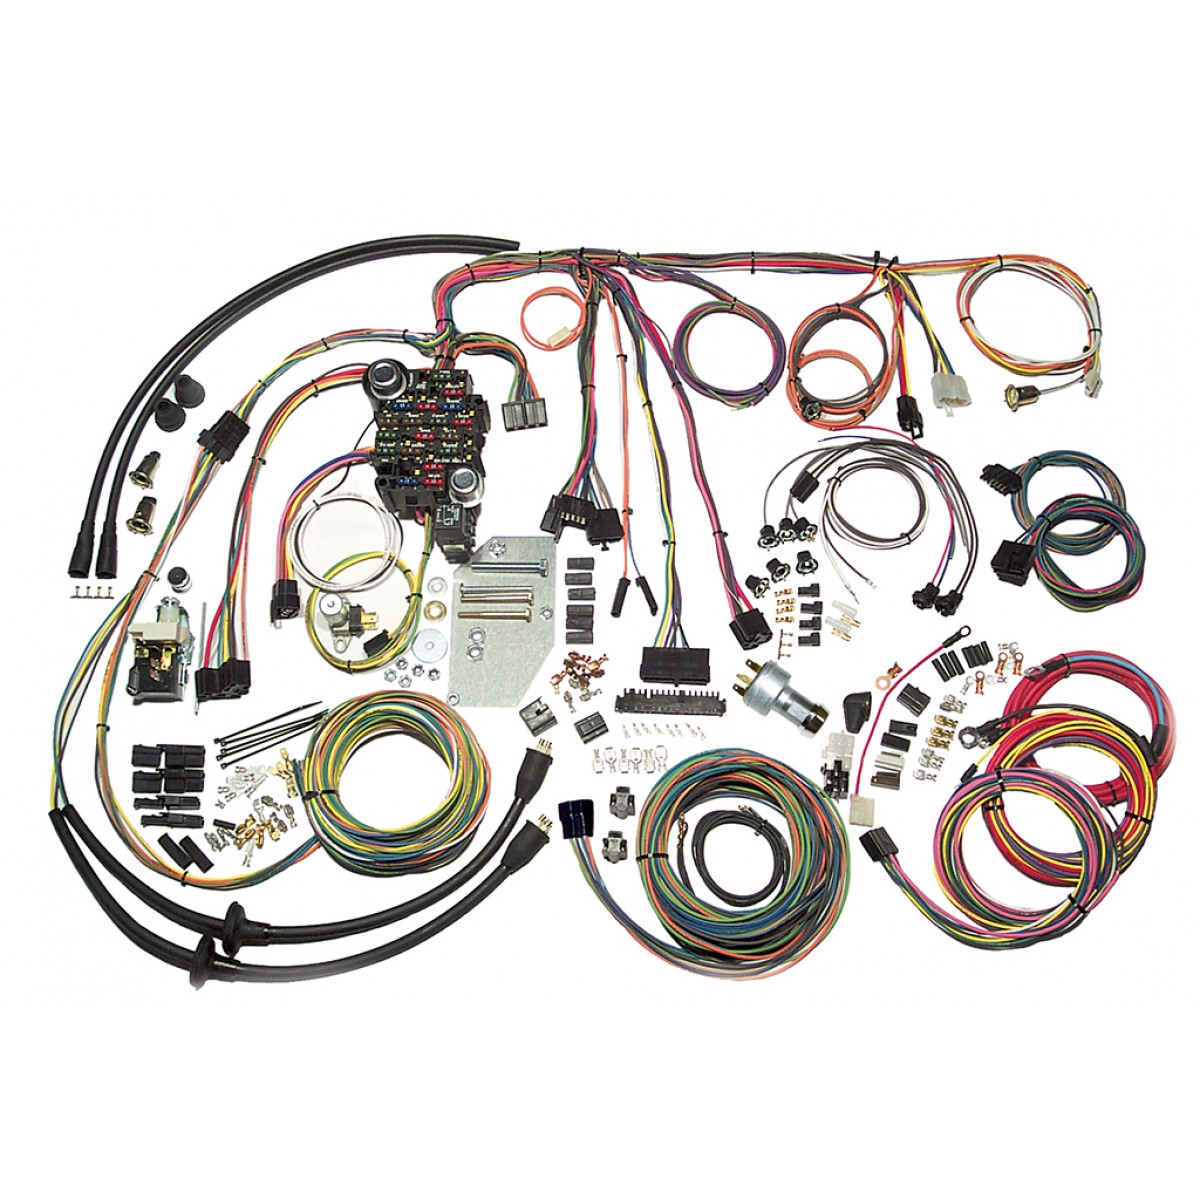 Wiring Harness Kit 1955 Chevy House Diagram Symbols 1949 Deluxe Complete 1956 Tri Five Belair Part Rh Code510 Com 2002 Gmc Dump Truck 1997 For Fisher